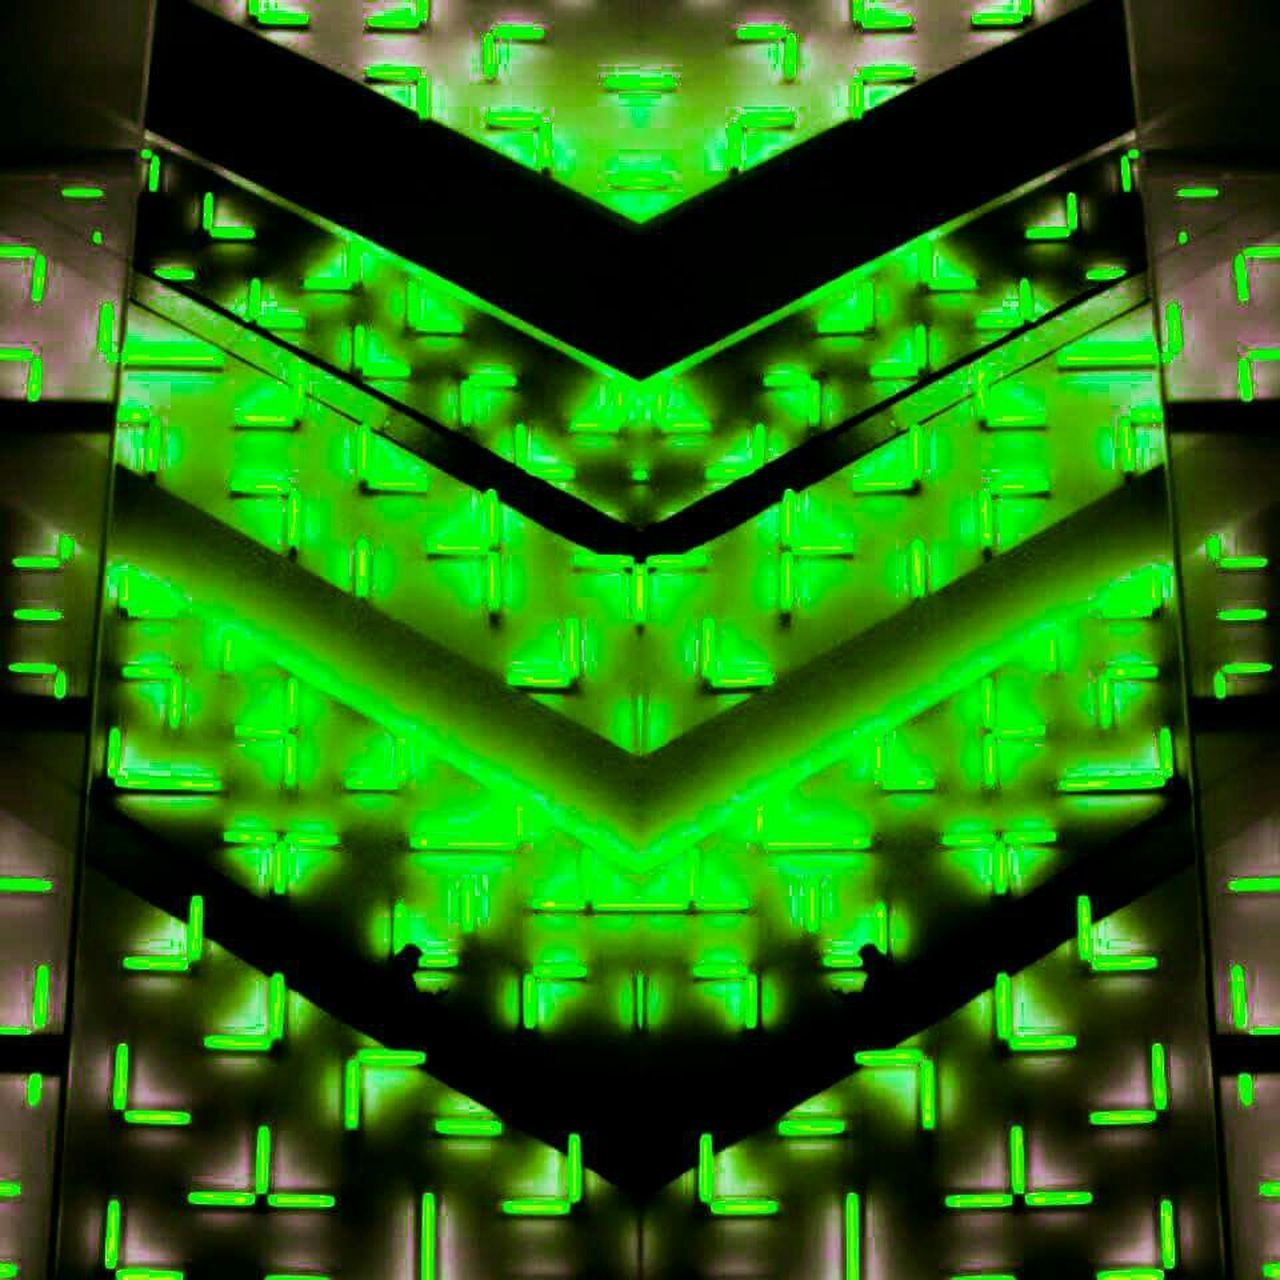 green color, illuminated, abstract, science, symmetry, technology, backgrounds, pattern, communication, no people, data, complexity, black background, cyberspace, futuristic, close-up, network server, mother board, day